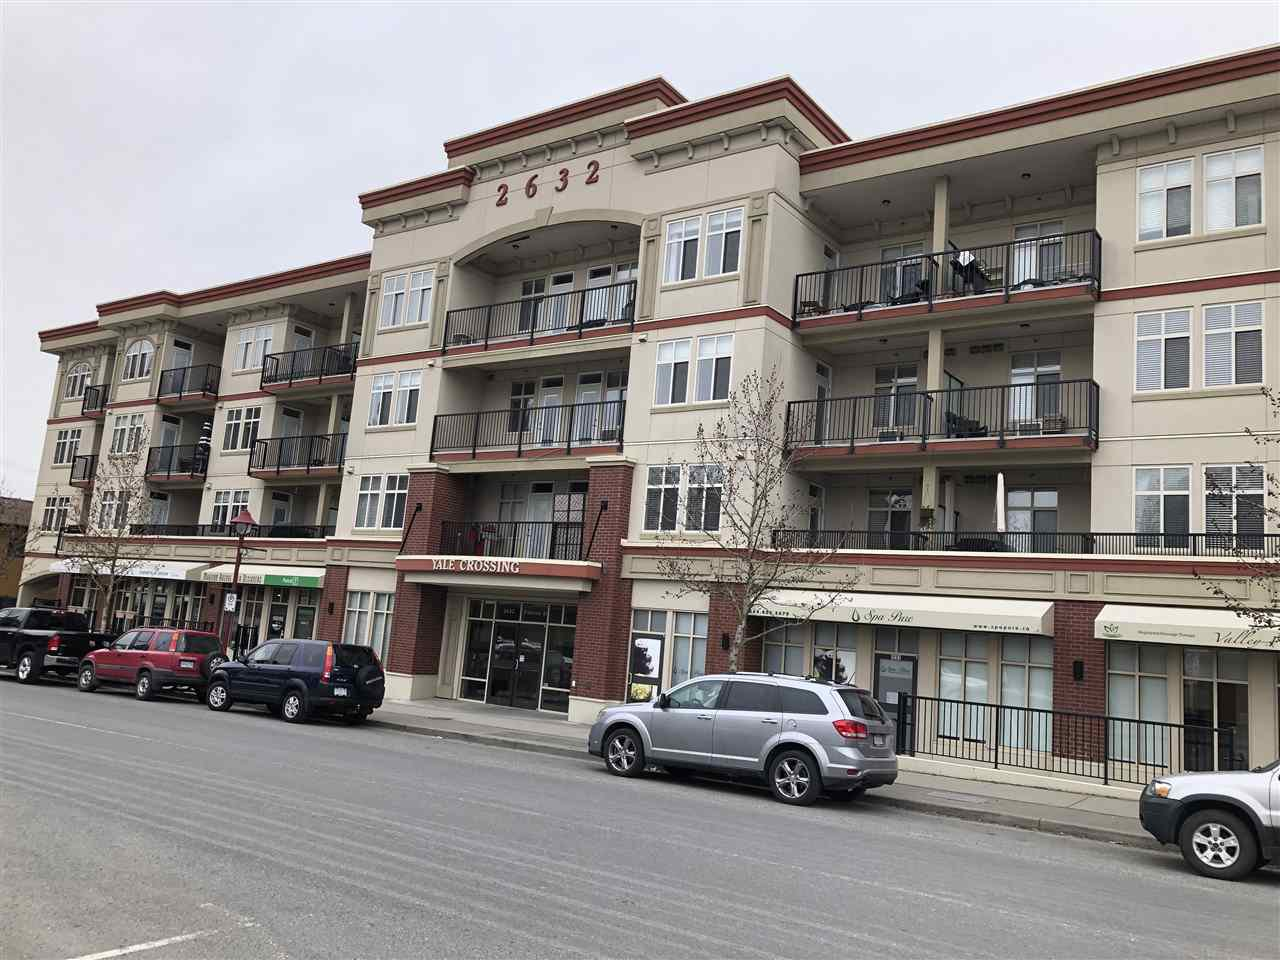 "Main Photo: 206 2632 PAULINE Street in Abbotsford: Central Abbotsford Condo for sale in ""Yale Crossing"" : MLS®# R2345124"